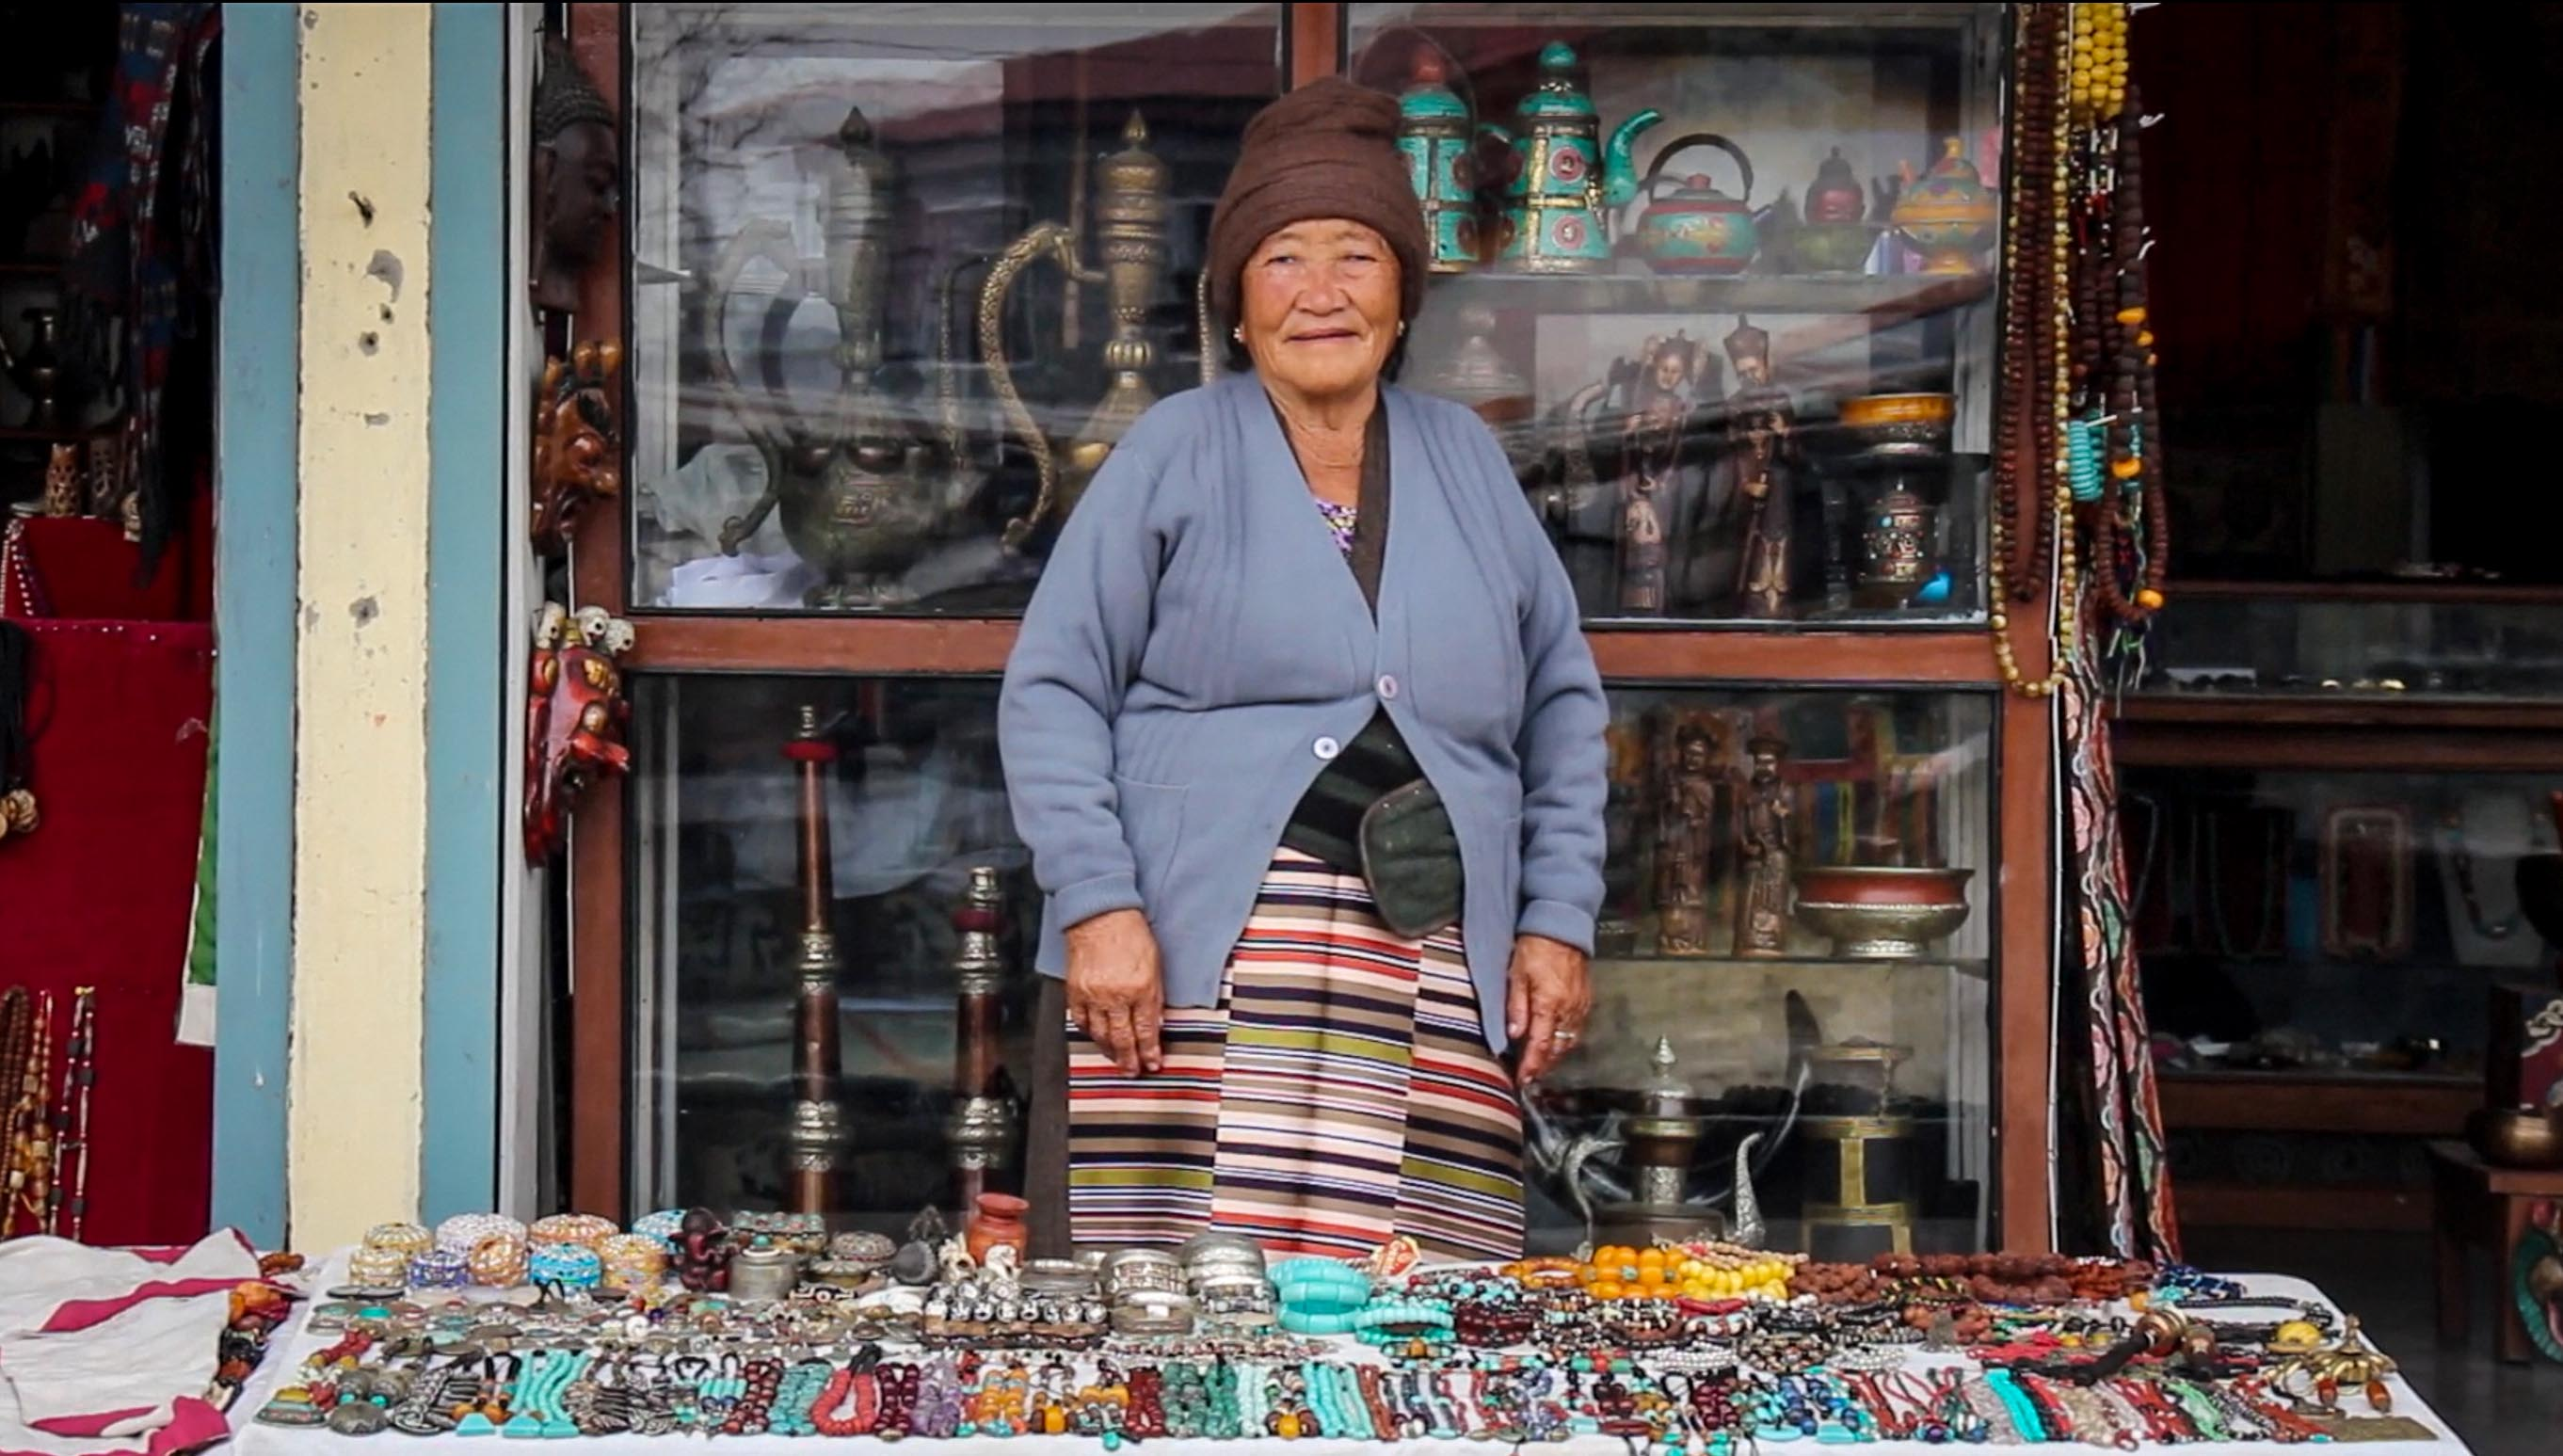 Paljorling Tibetan Refugee Settlement Pokhara, Tibetans In Nepal Seek Economic And Cultural Stability | Our ...